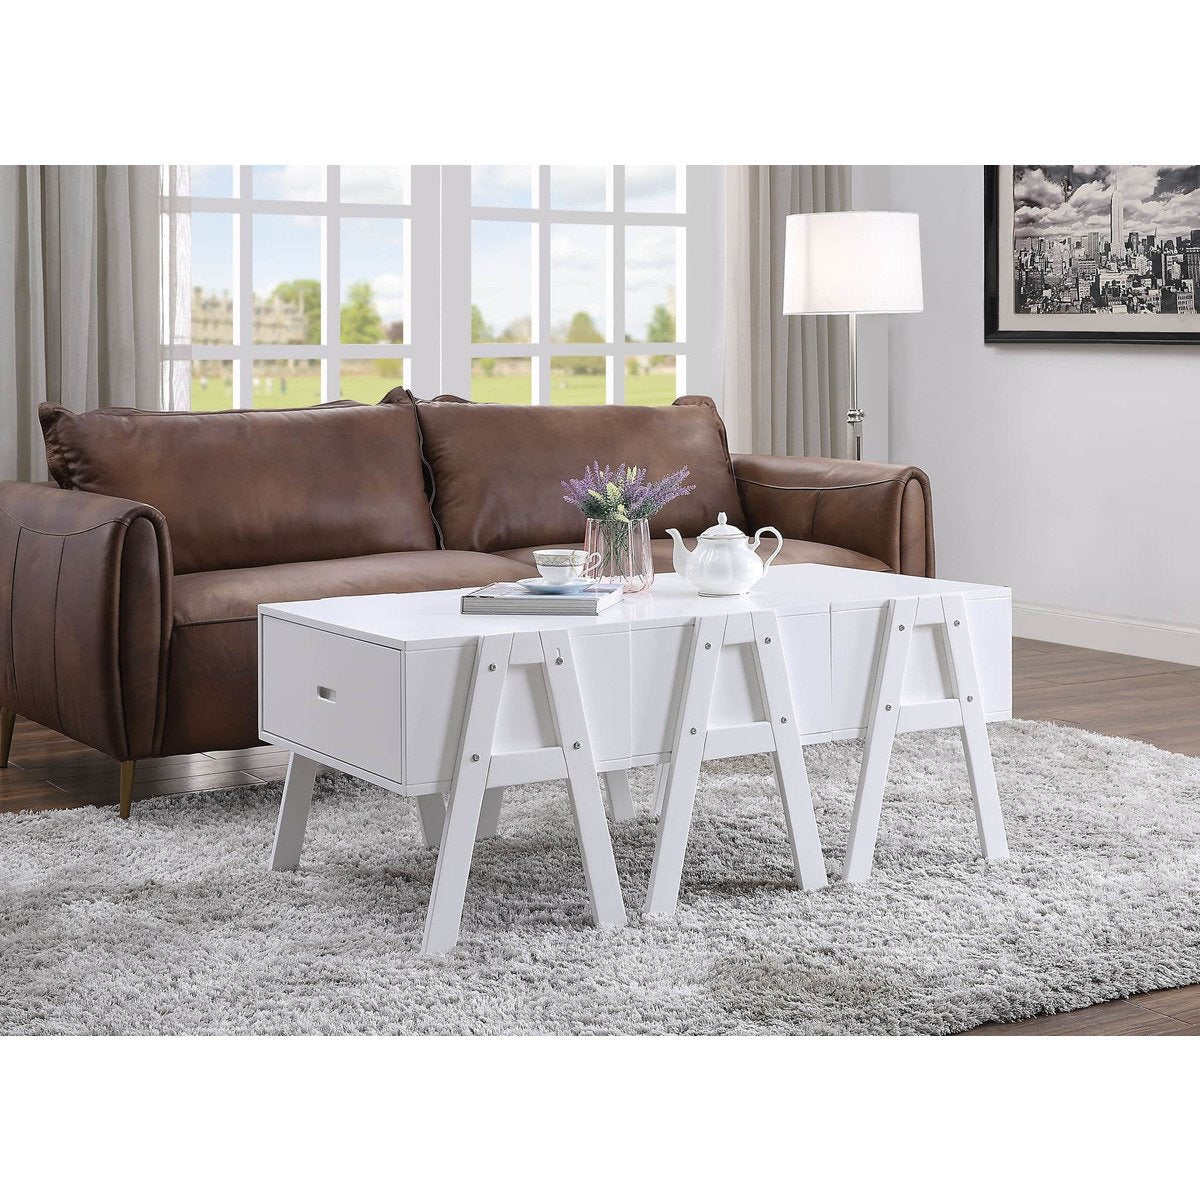 Coffee Tables - Three Drawers Wooden Convertible Coffee Table With Angled Legs, White